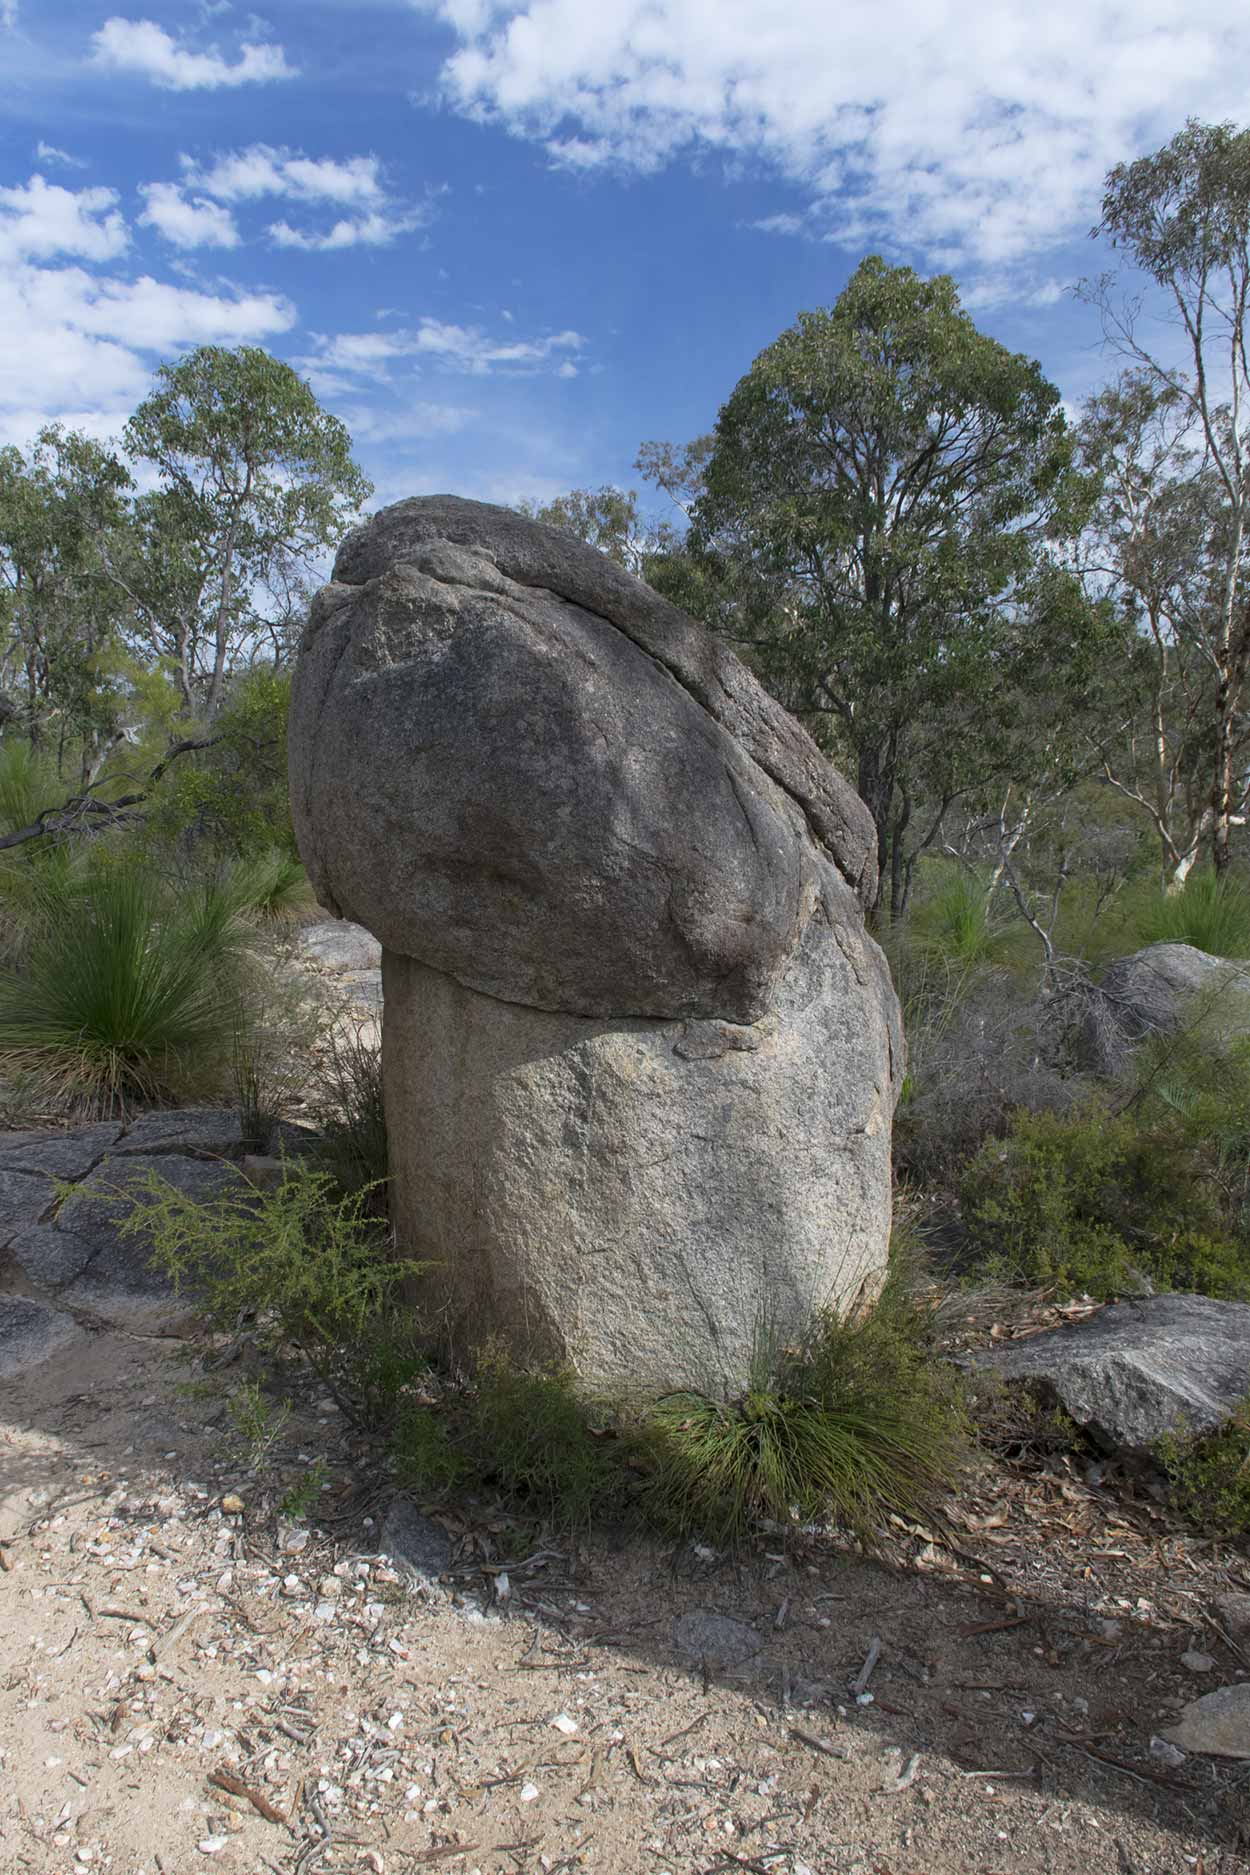 Cock rock on the Bibbulmun Track, Kalamunda National Park, Perth, Western Australia